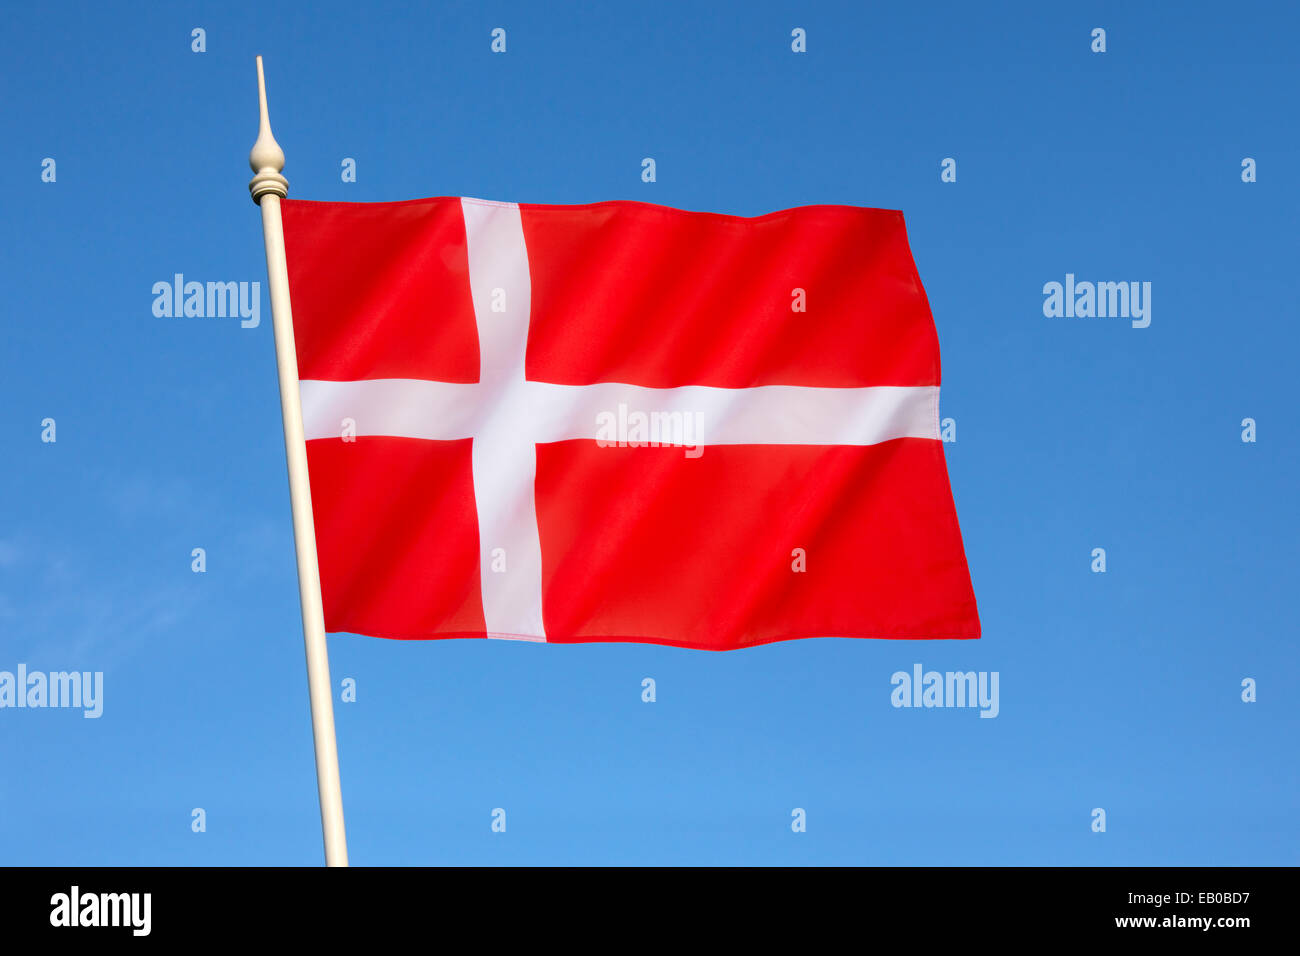 Flag of Denmark - Dannebrog Stock Photo